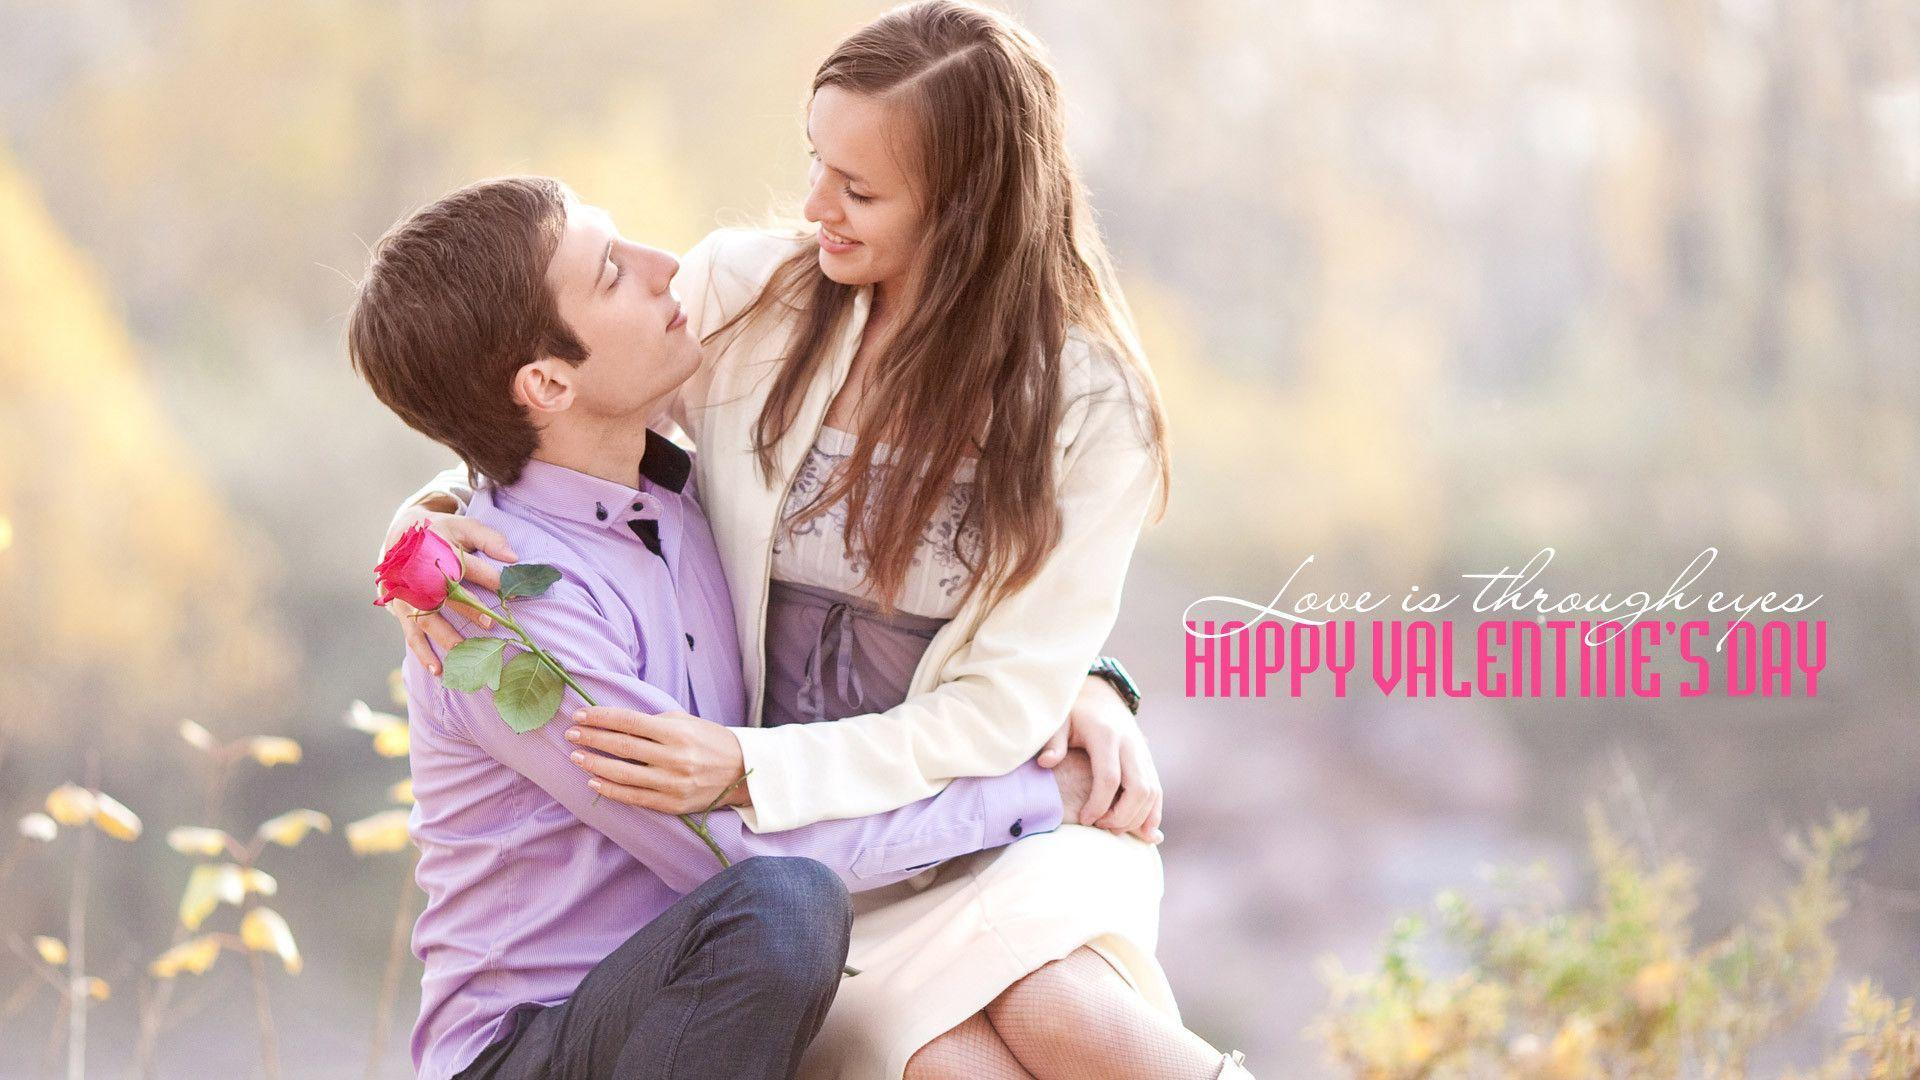 Wallpaper Of Love couple Hd : cute couple Backgrounds - Wallpaper cave